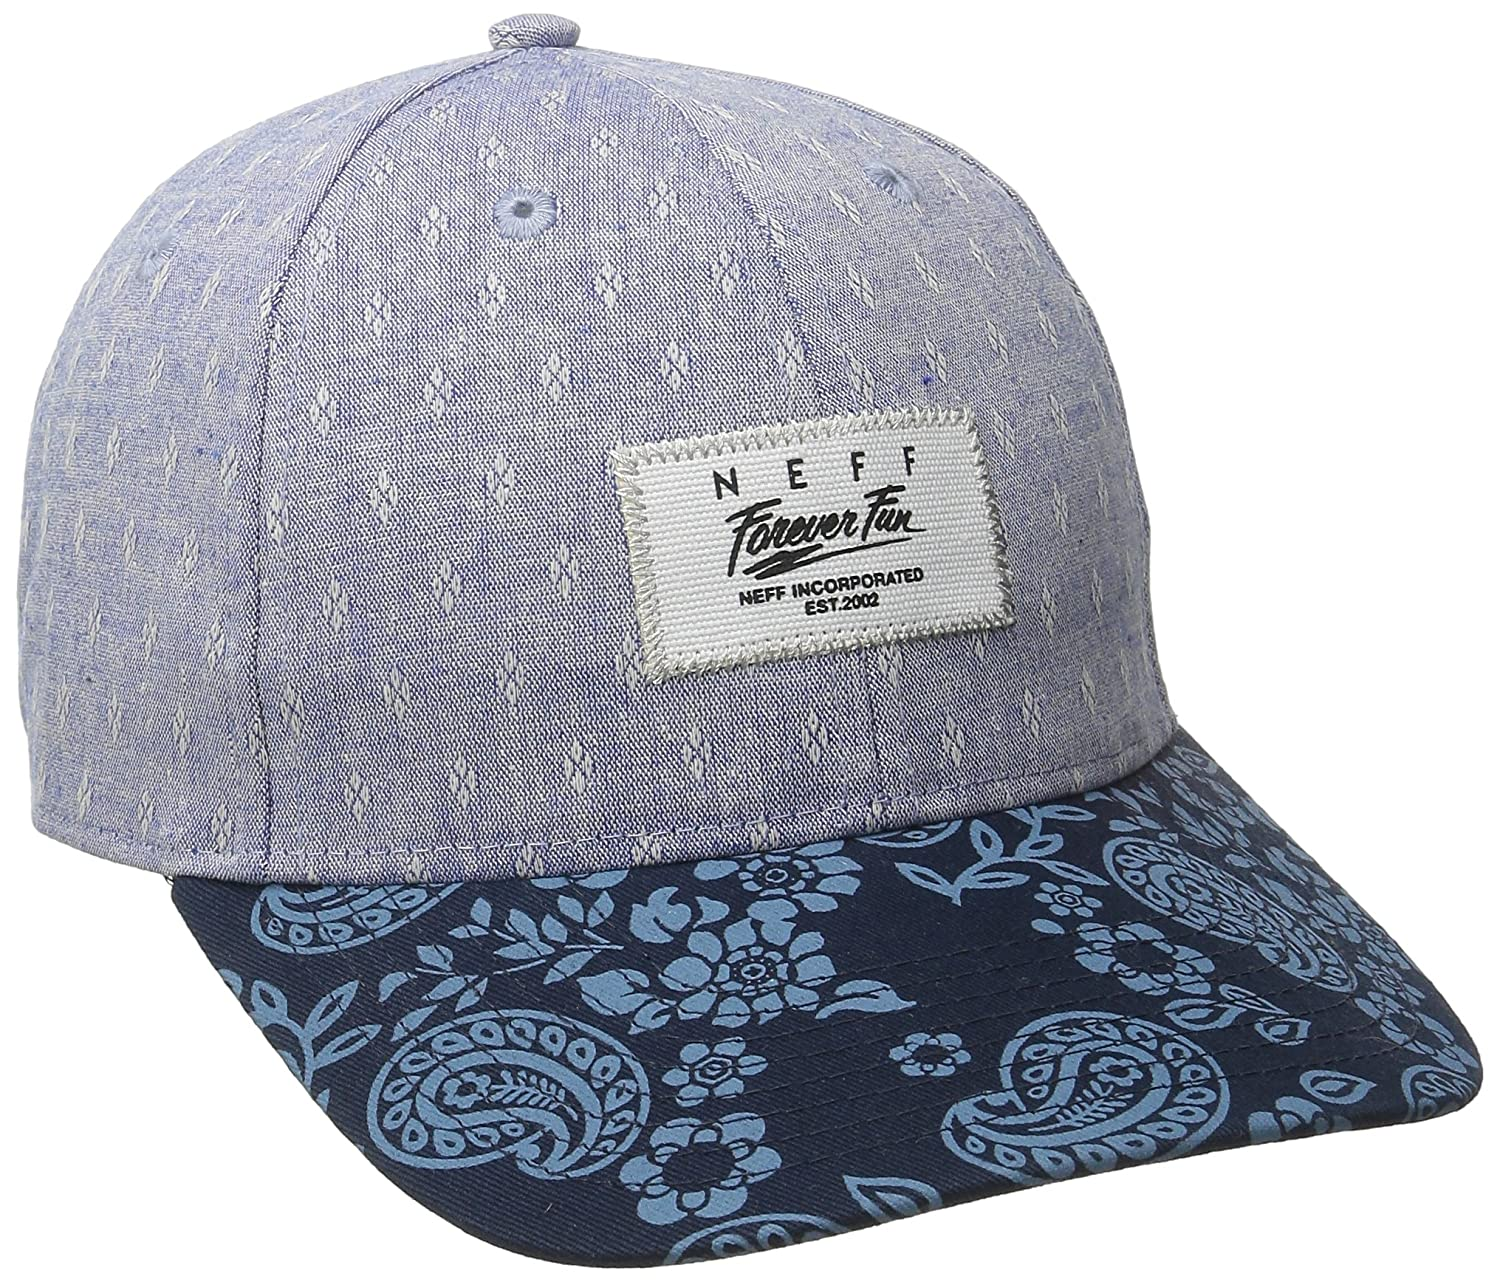 35b9526fa Amazon.com: NEFF Women's Sprung Cotton Twill Printed Hat, Blue One ...